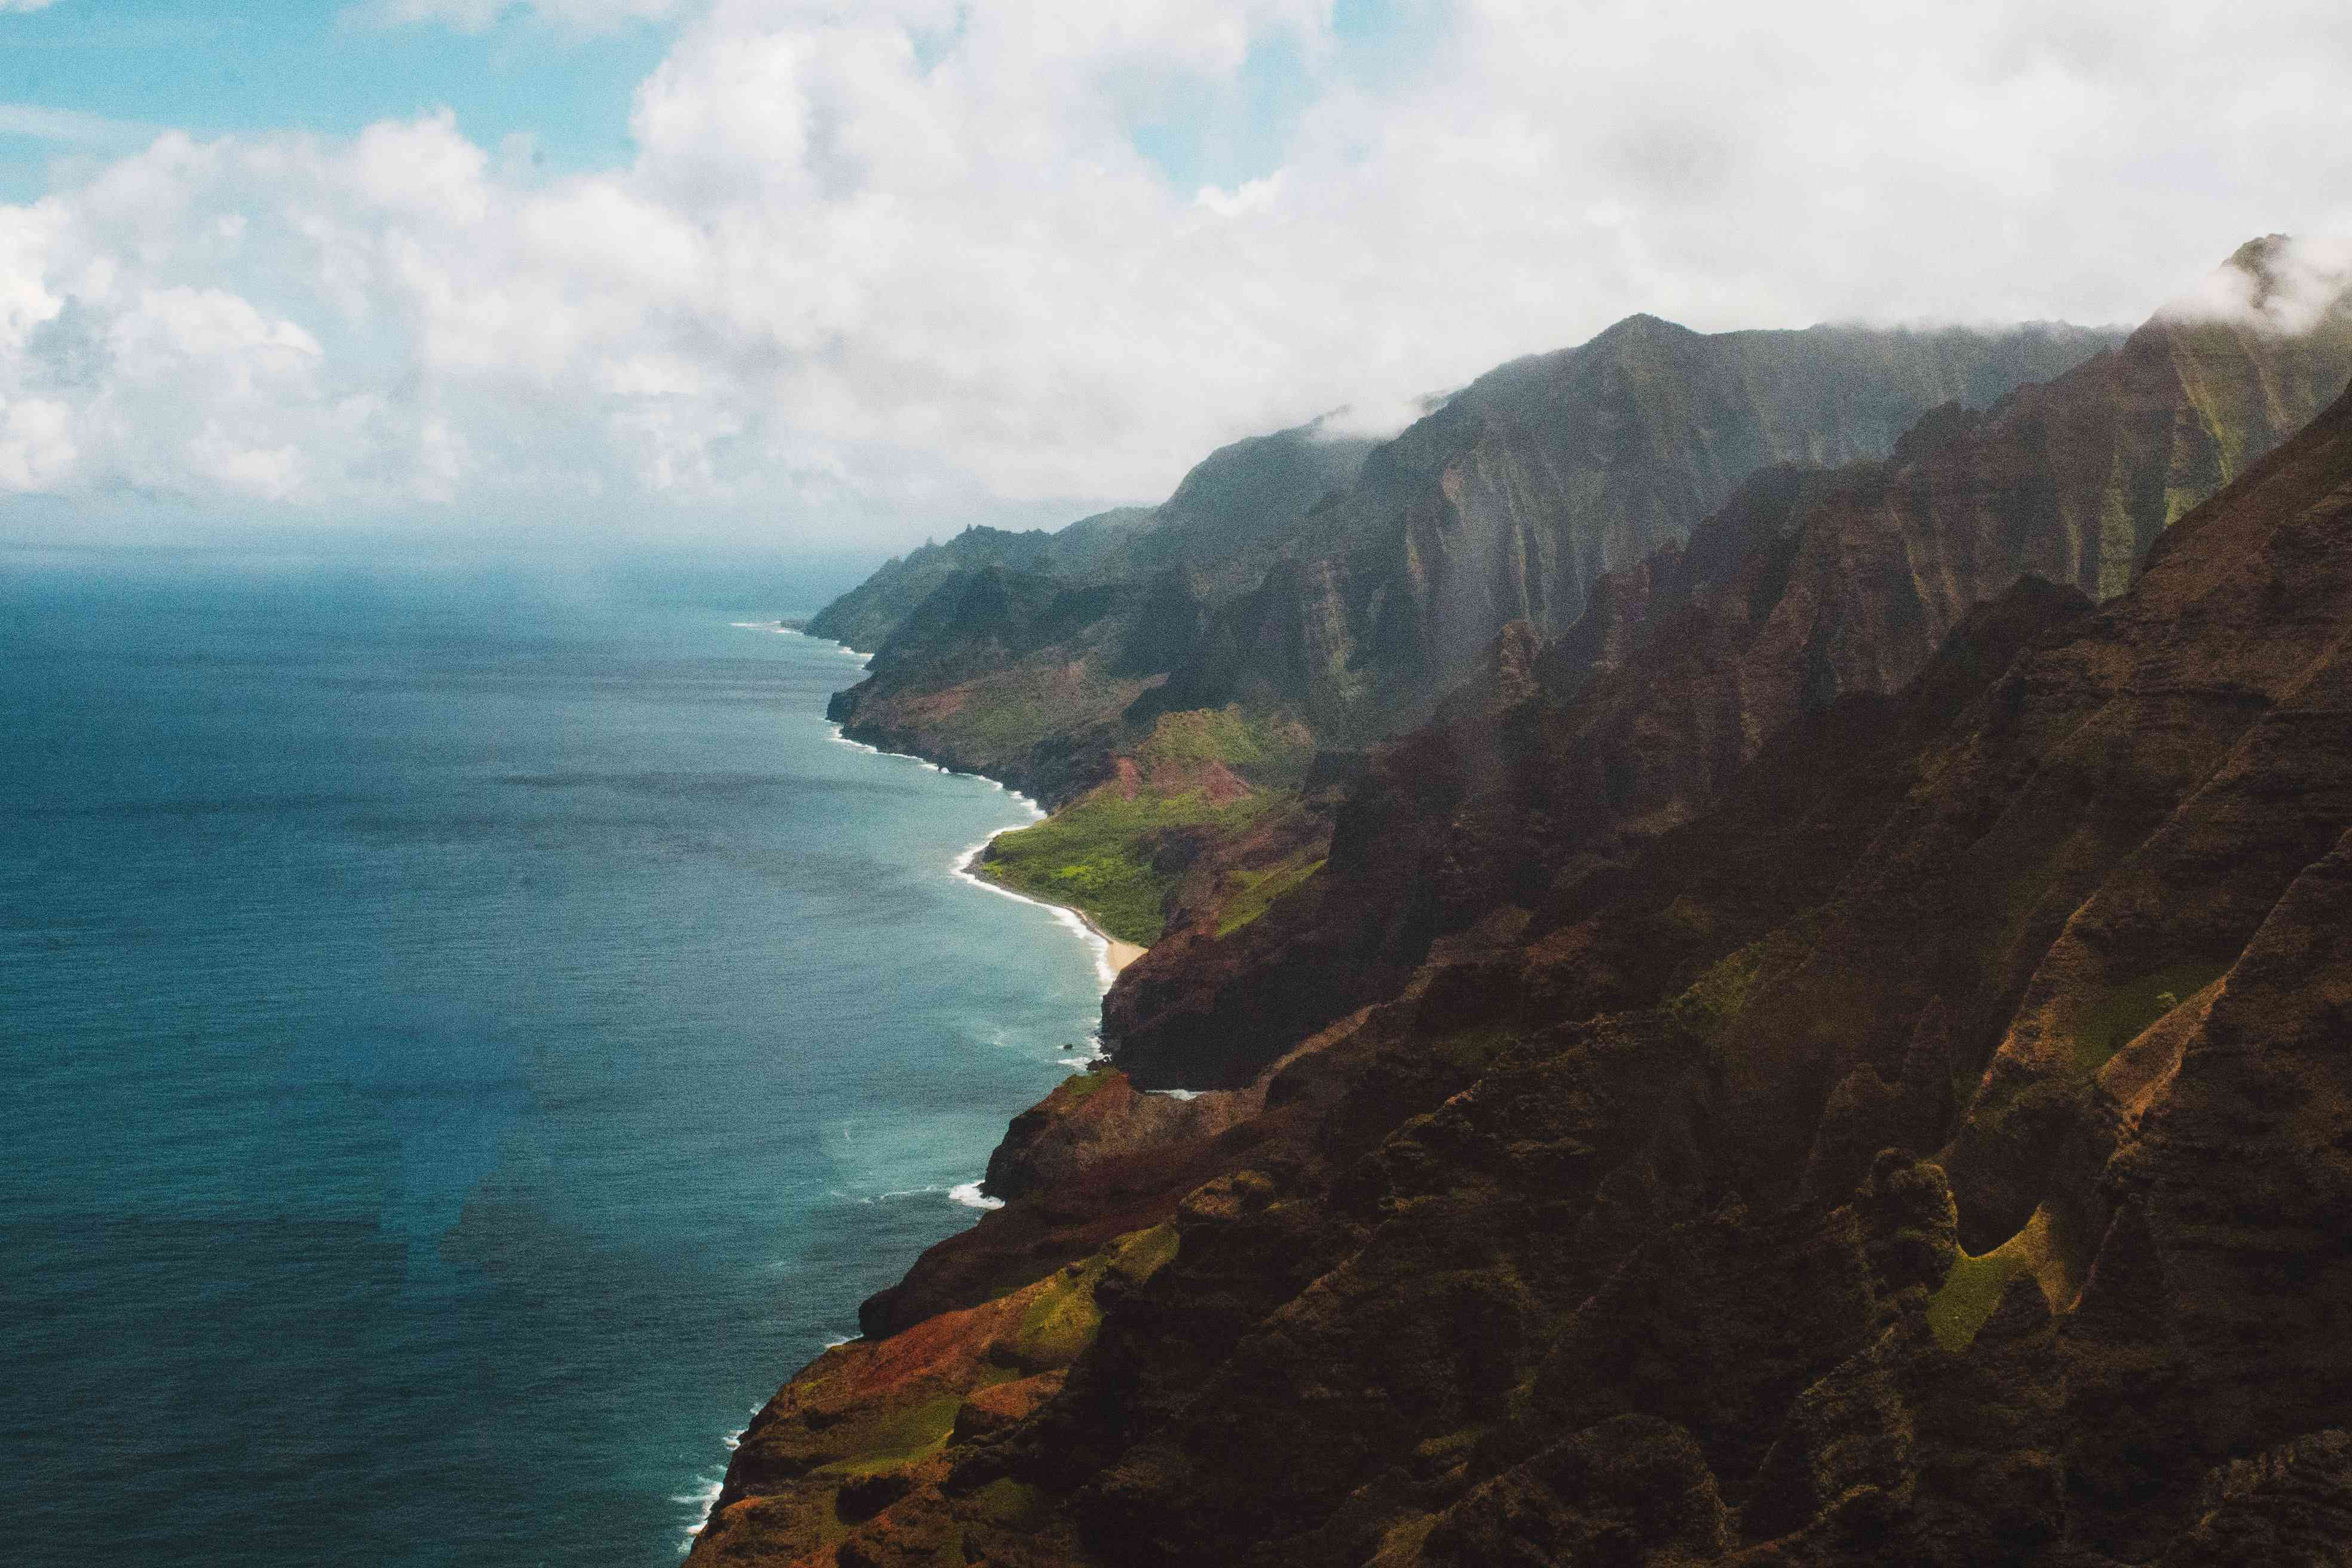 View of Napali Coast from Blue Hawaiian Helicopters